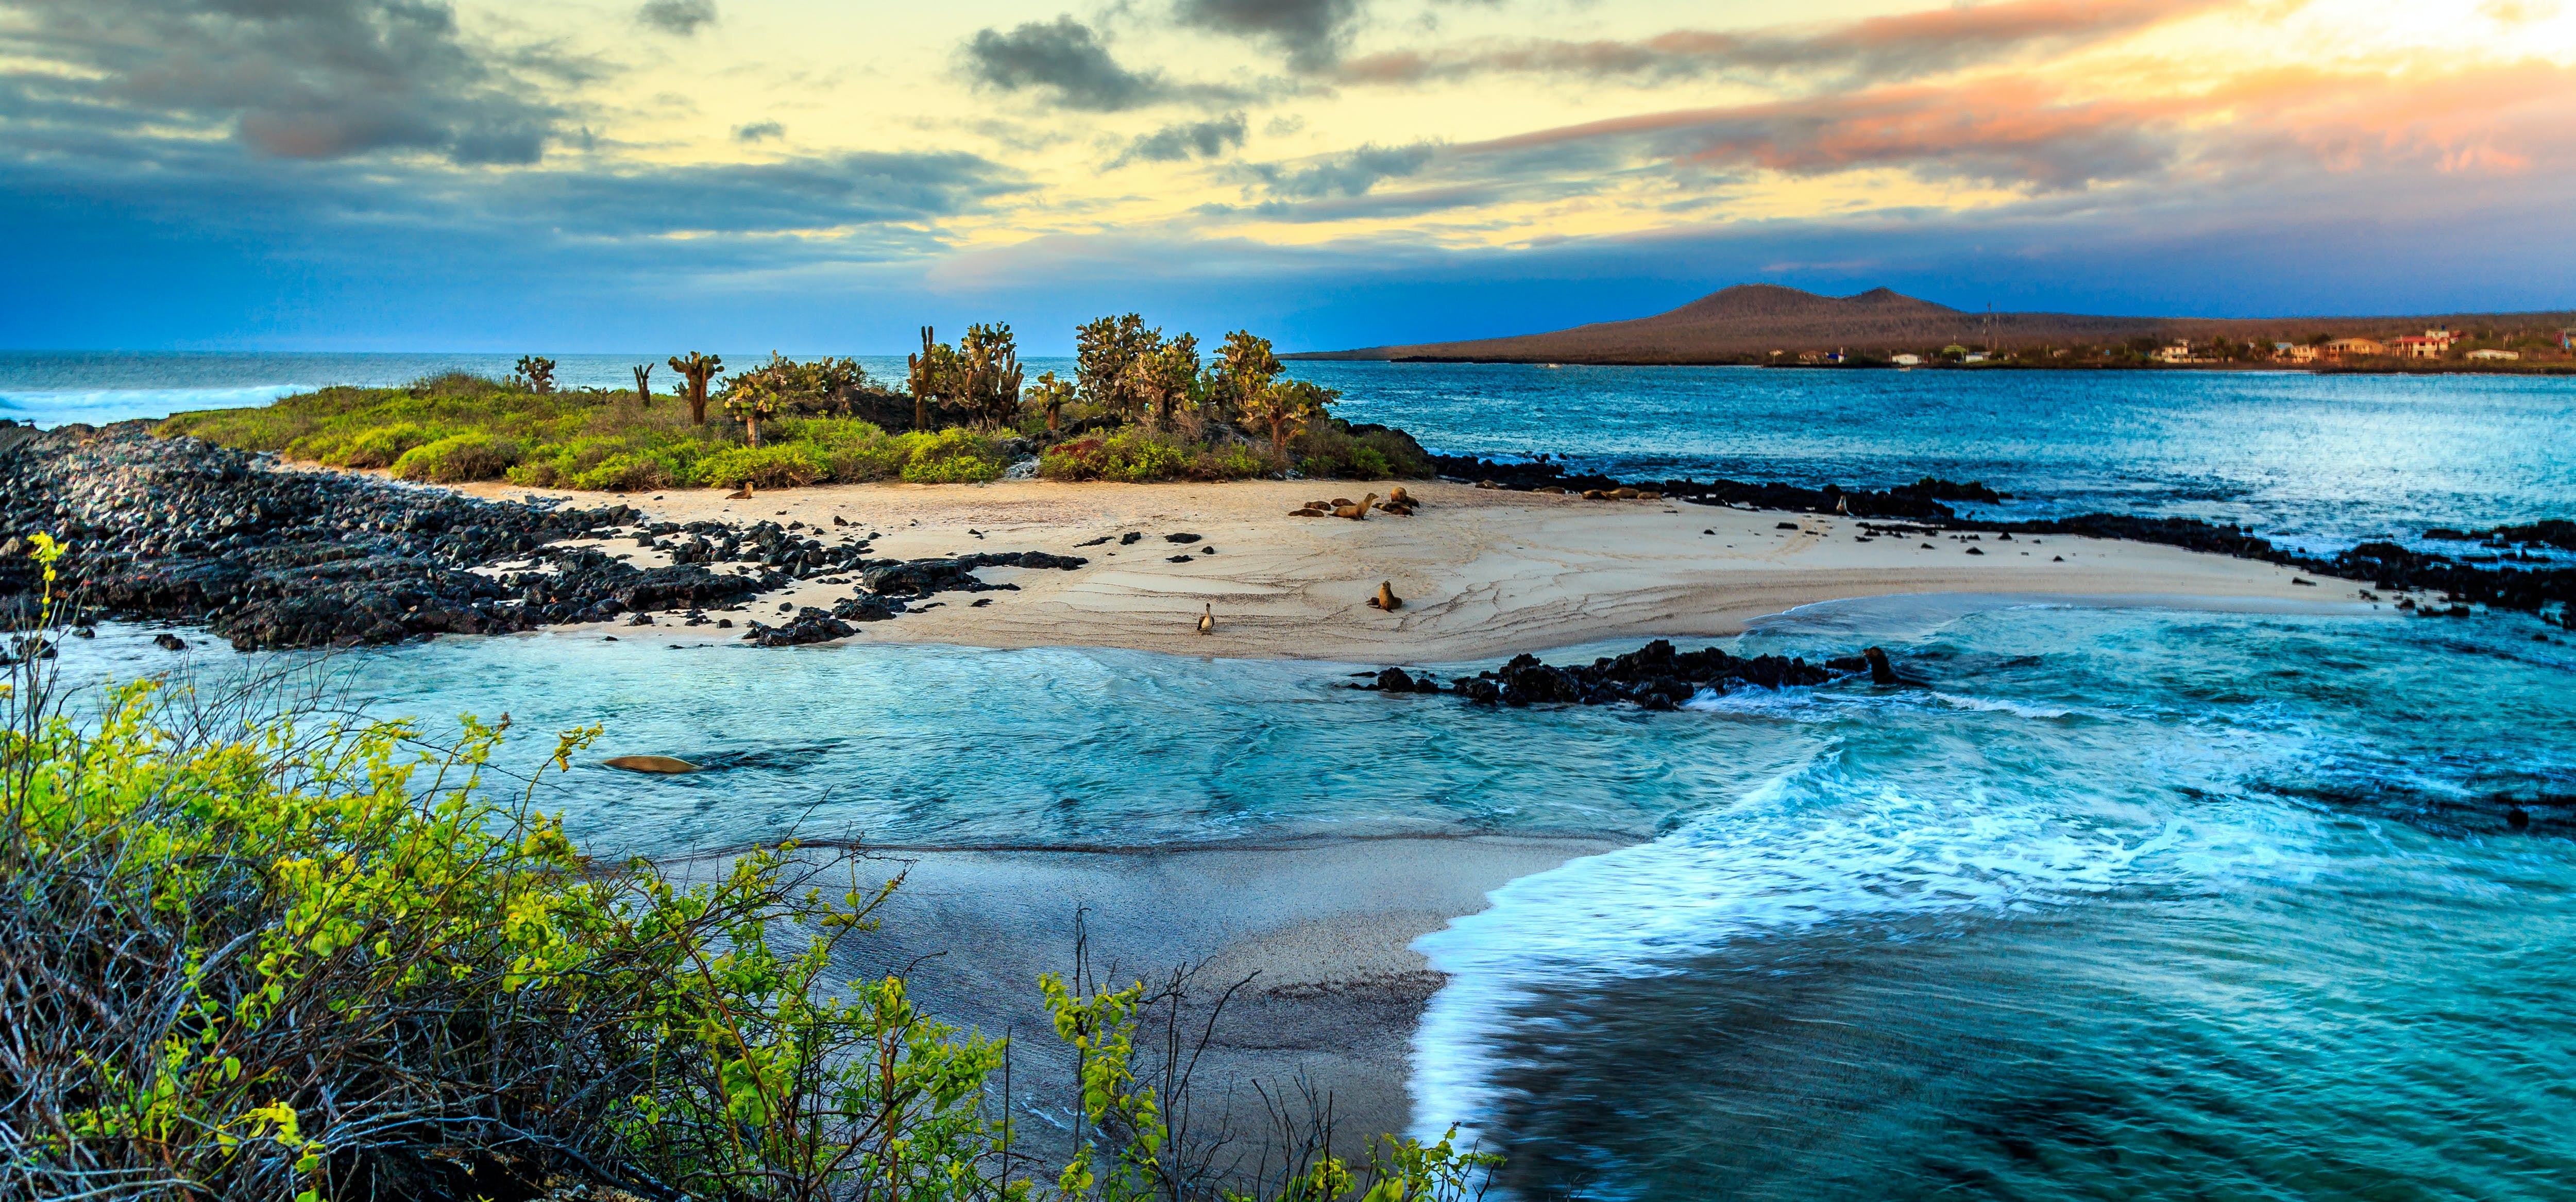 Discover the Galápagos Islands, one of the world's most famous and pristine natural laboratories.